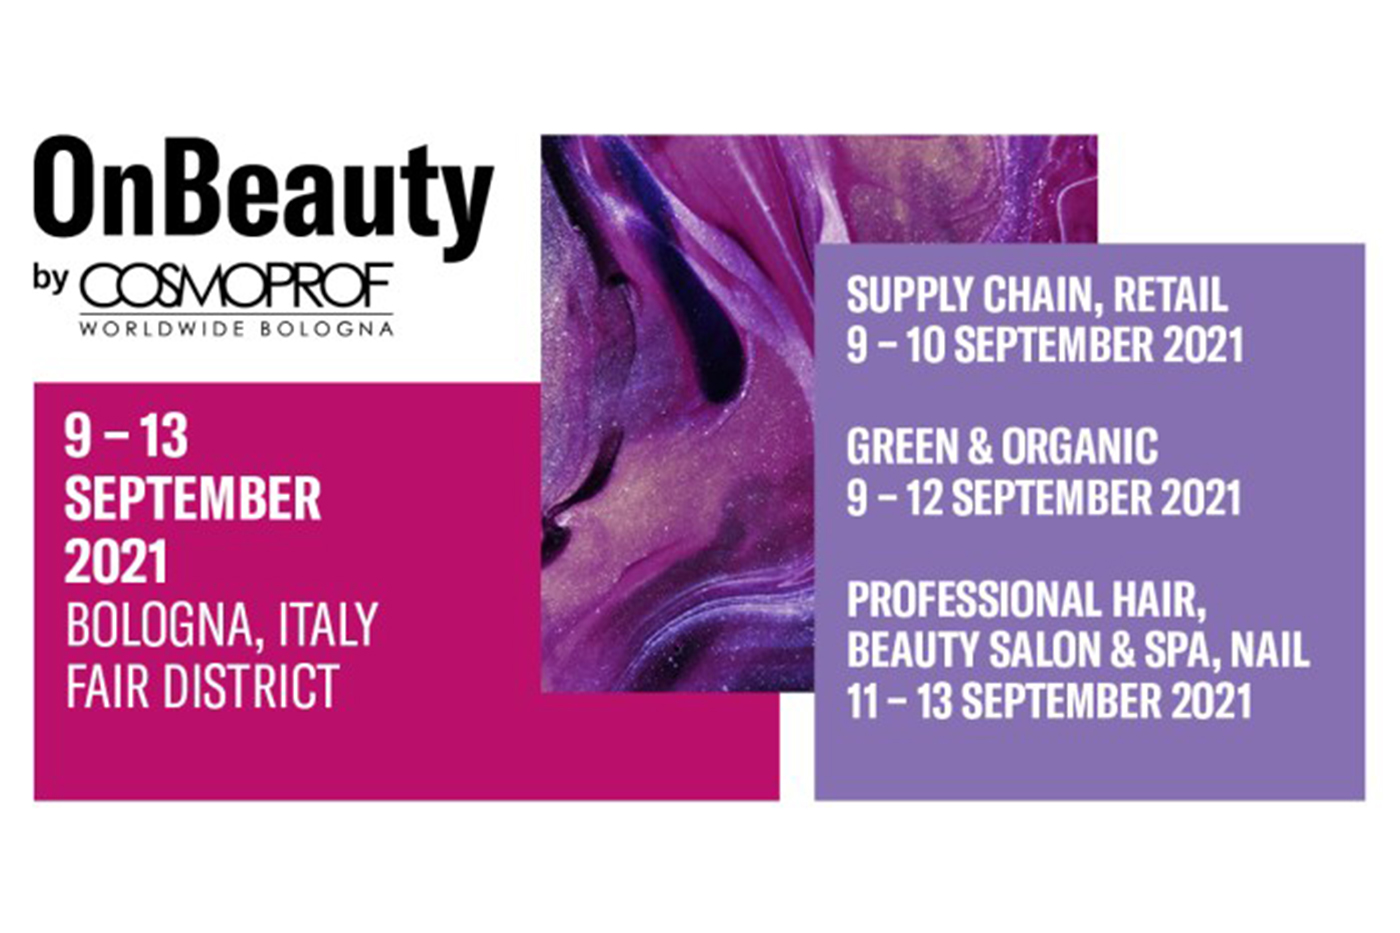 OnBeauty by Cosmoprof Worldwide Bologna to be held between 9-13 September